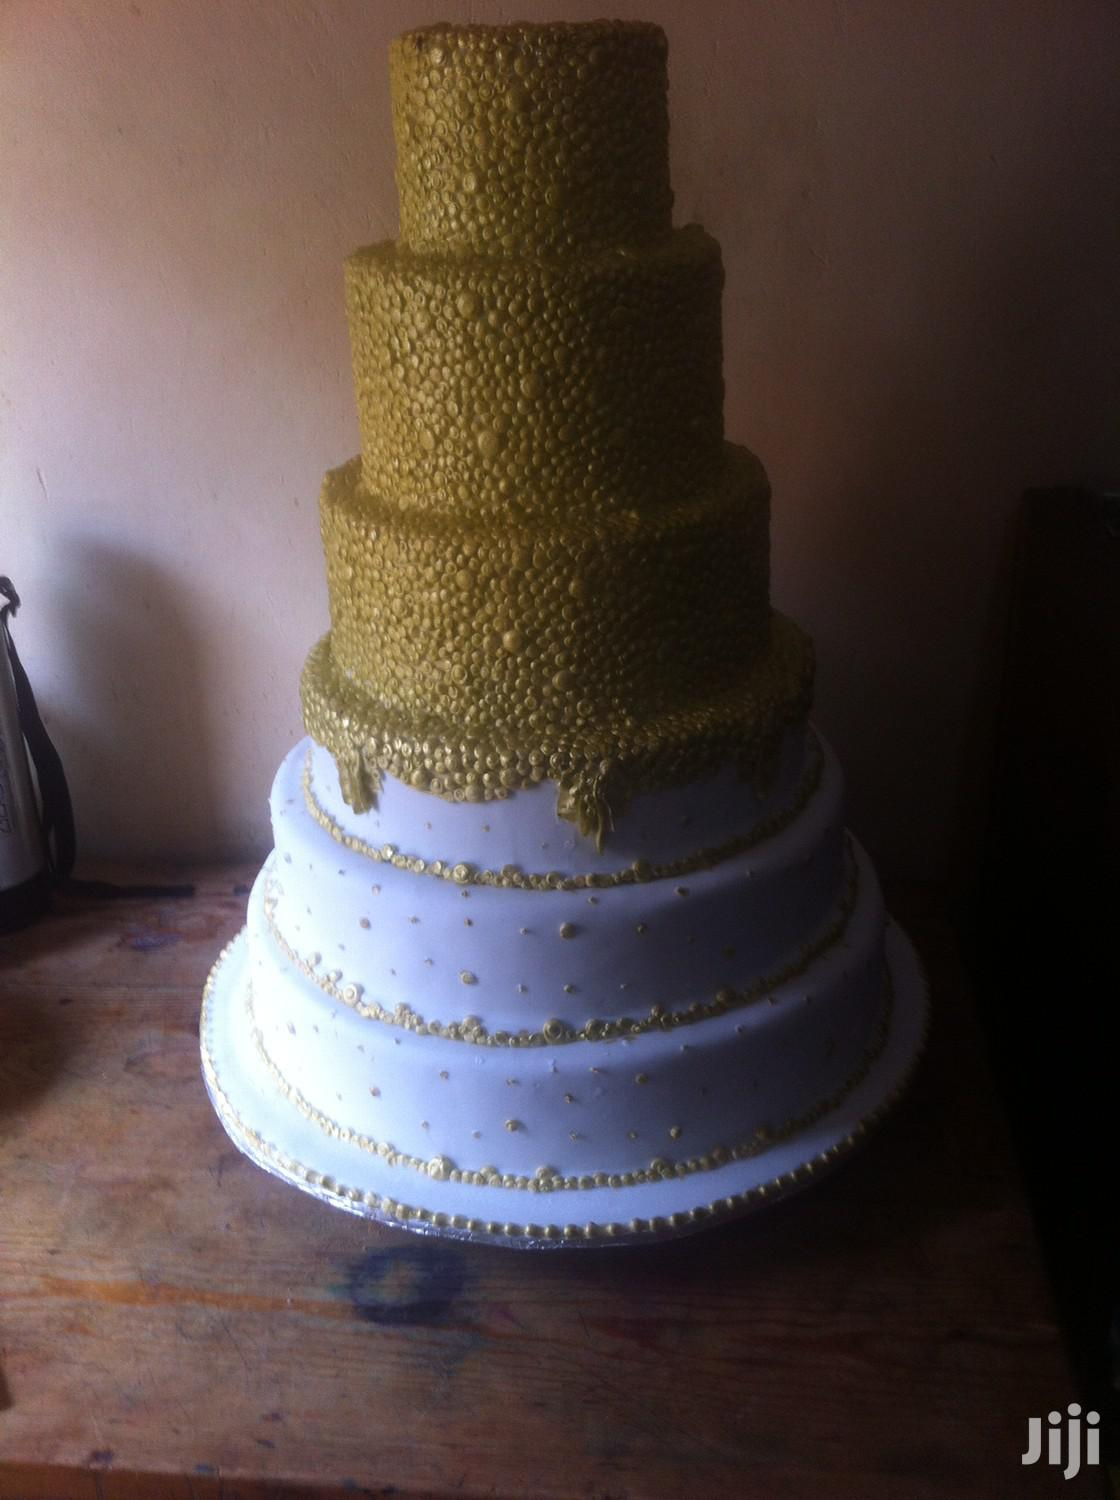 Cake Classes | Classes & Courses for sale in Kampala, Central Region, Uganda